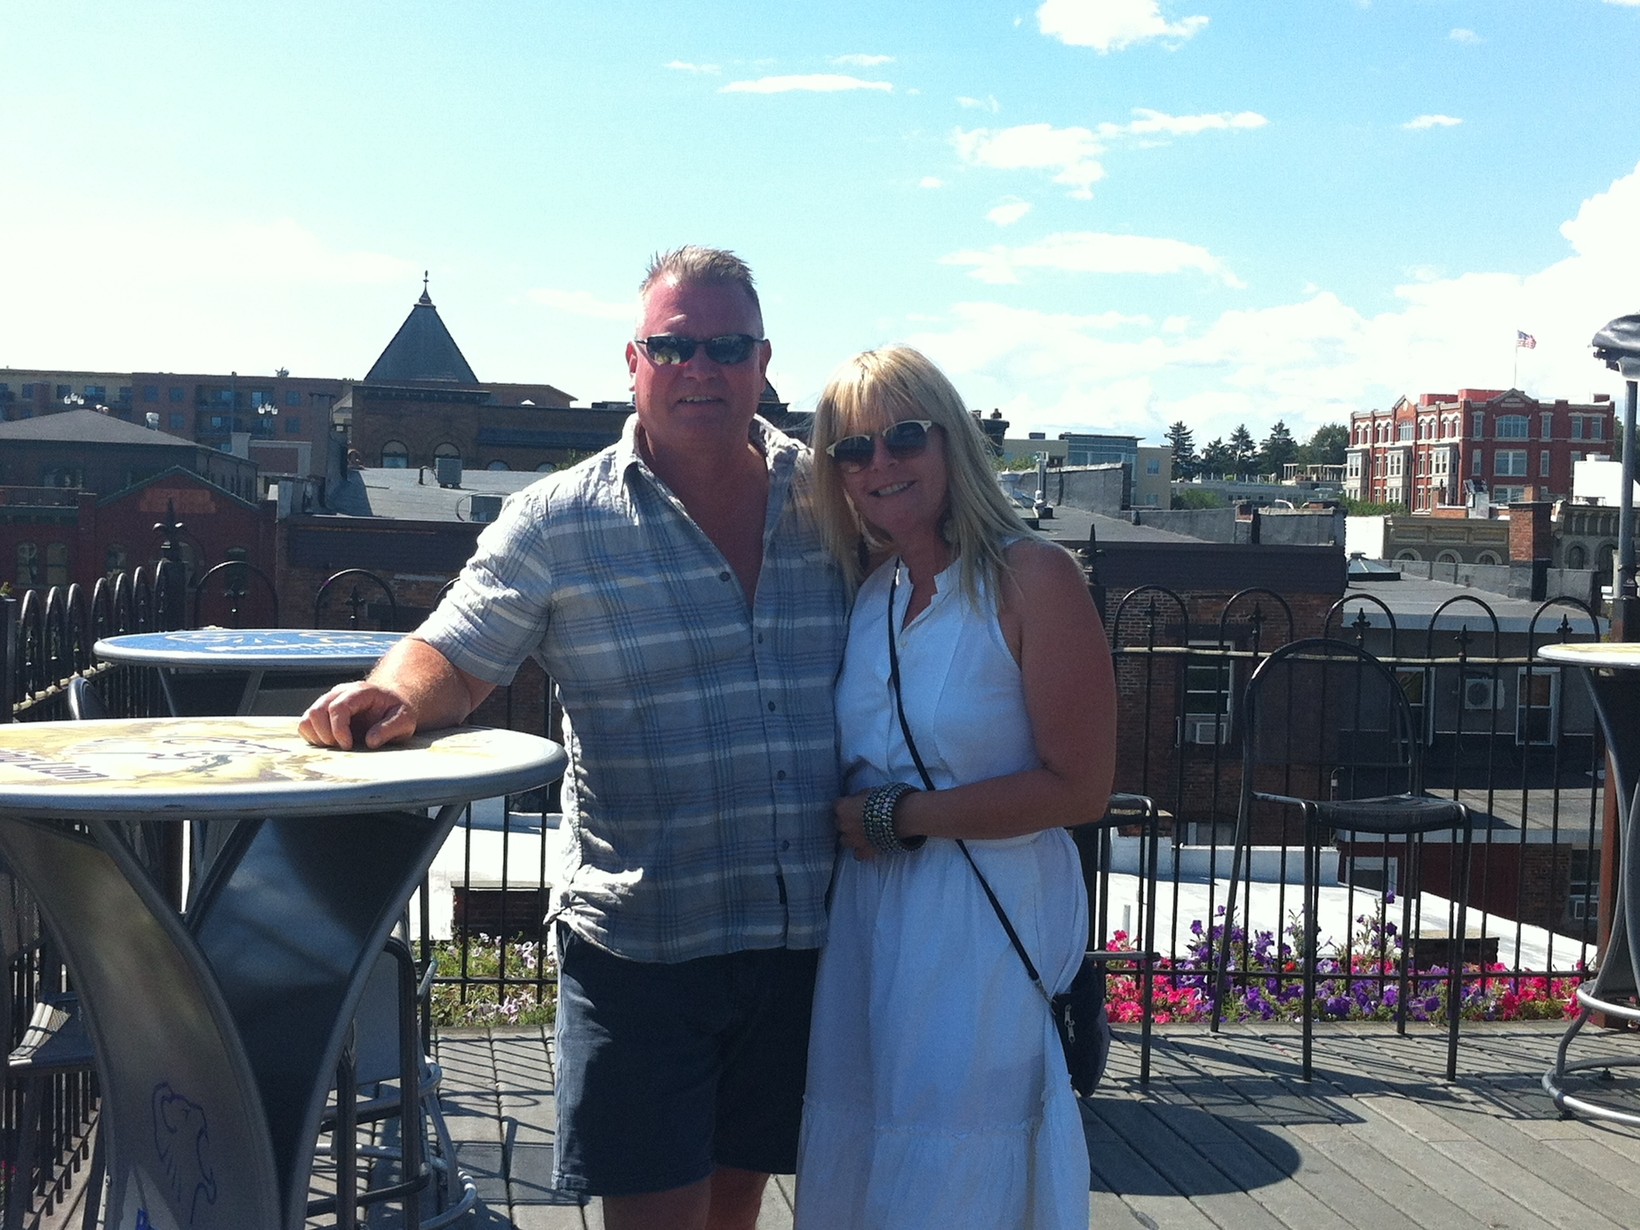 Bernadette & Mark from Ottawa, Ontario, Canada